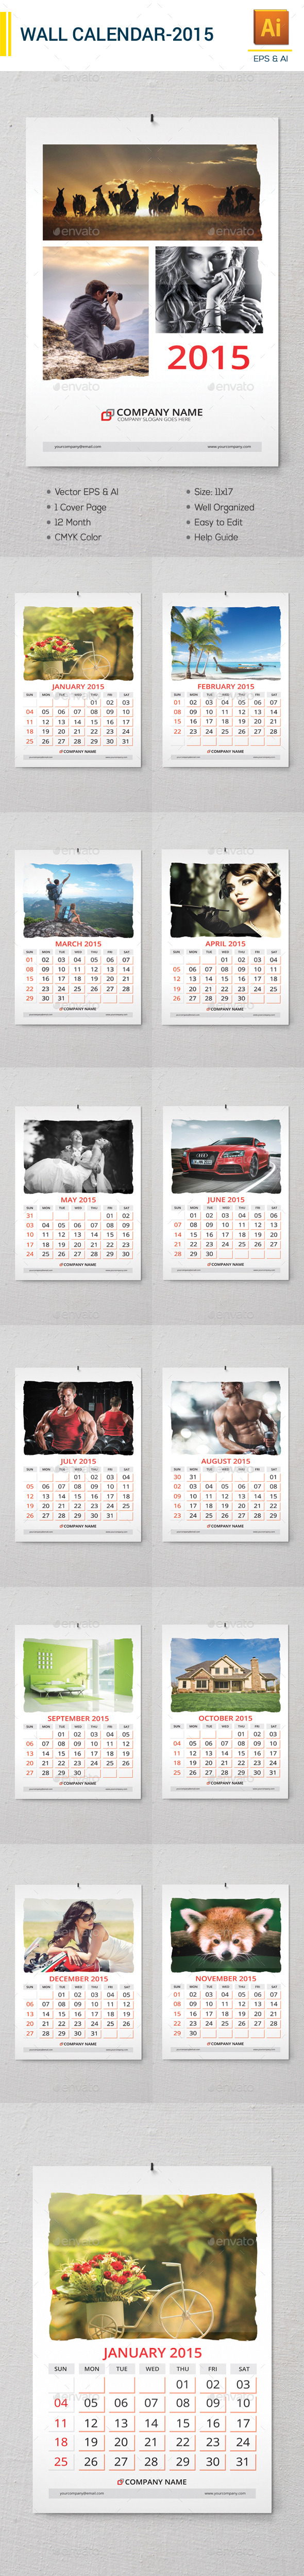 Wall Calender 2015 - Calendars Stationery